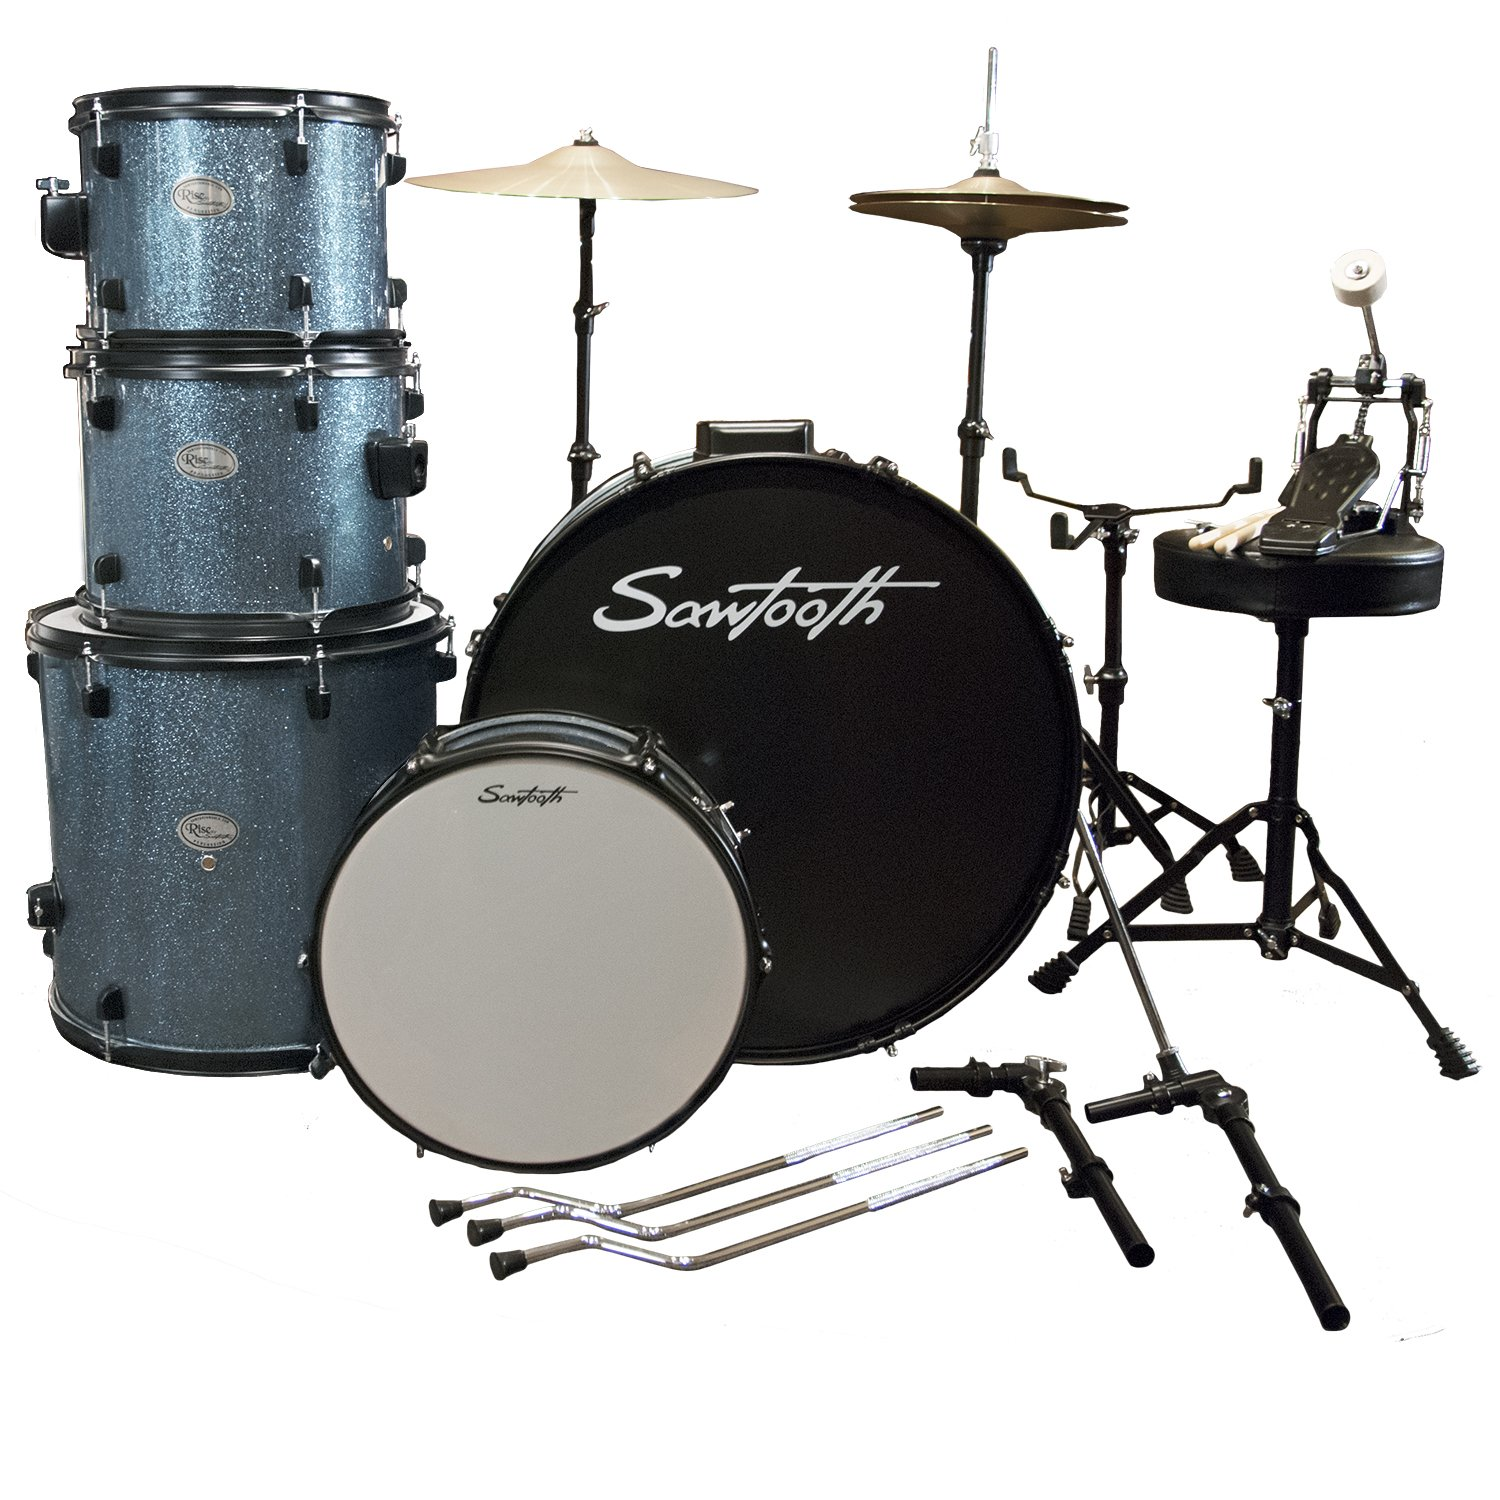 Rise by Sawtooth Full Size Student Drum Set with Hardware and Cymbals, Storm Blue Sparkle by Rise by Sawtooth (Image #3)